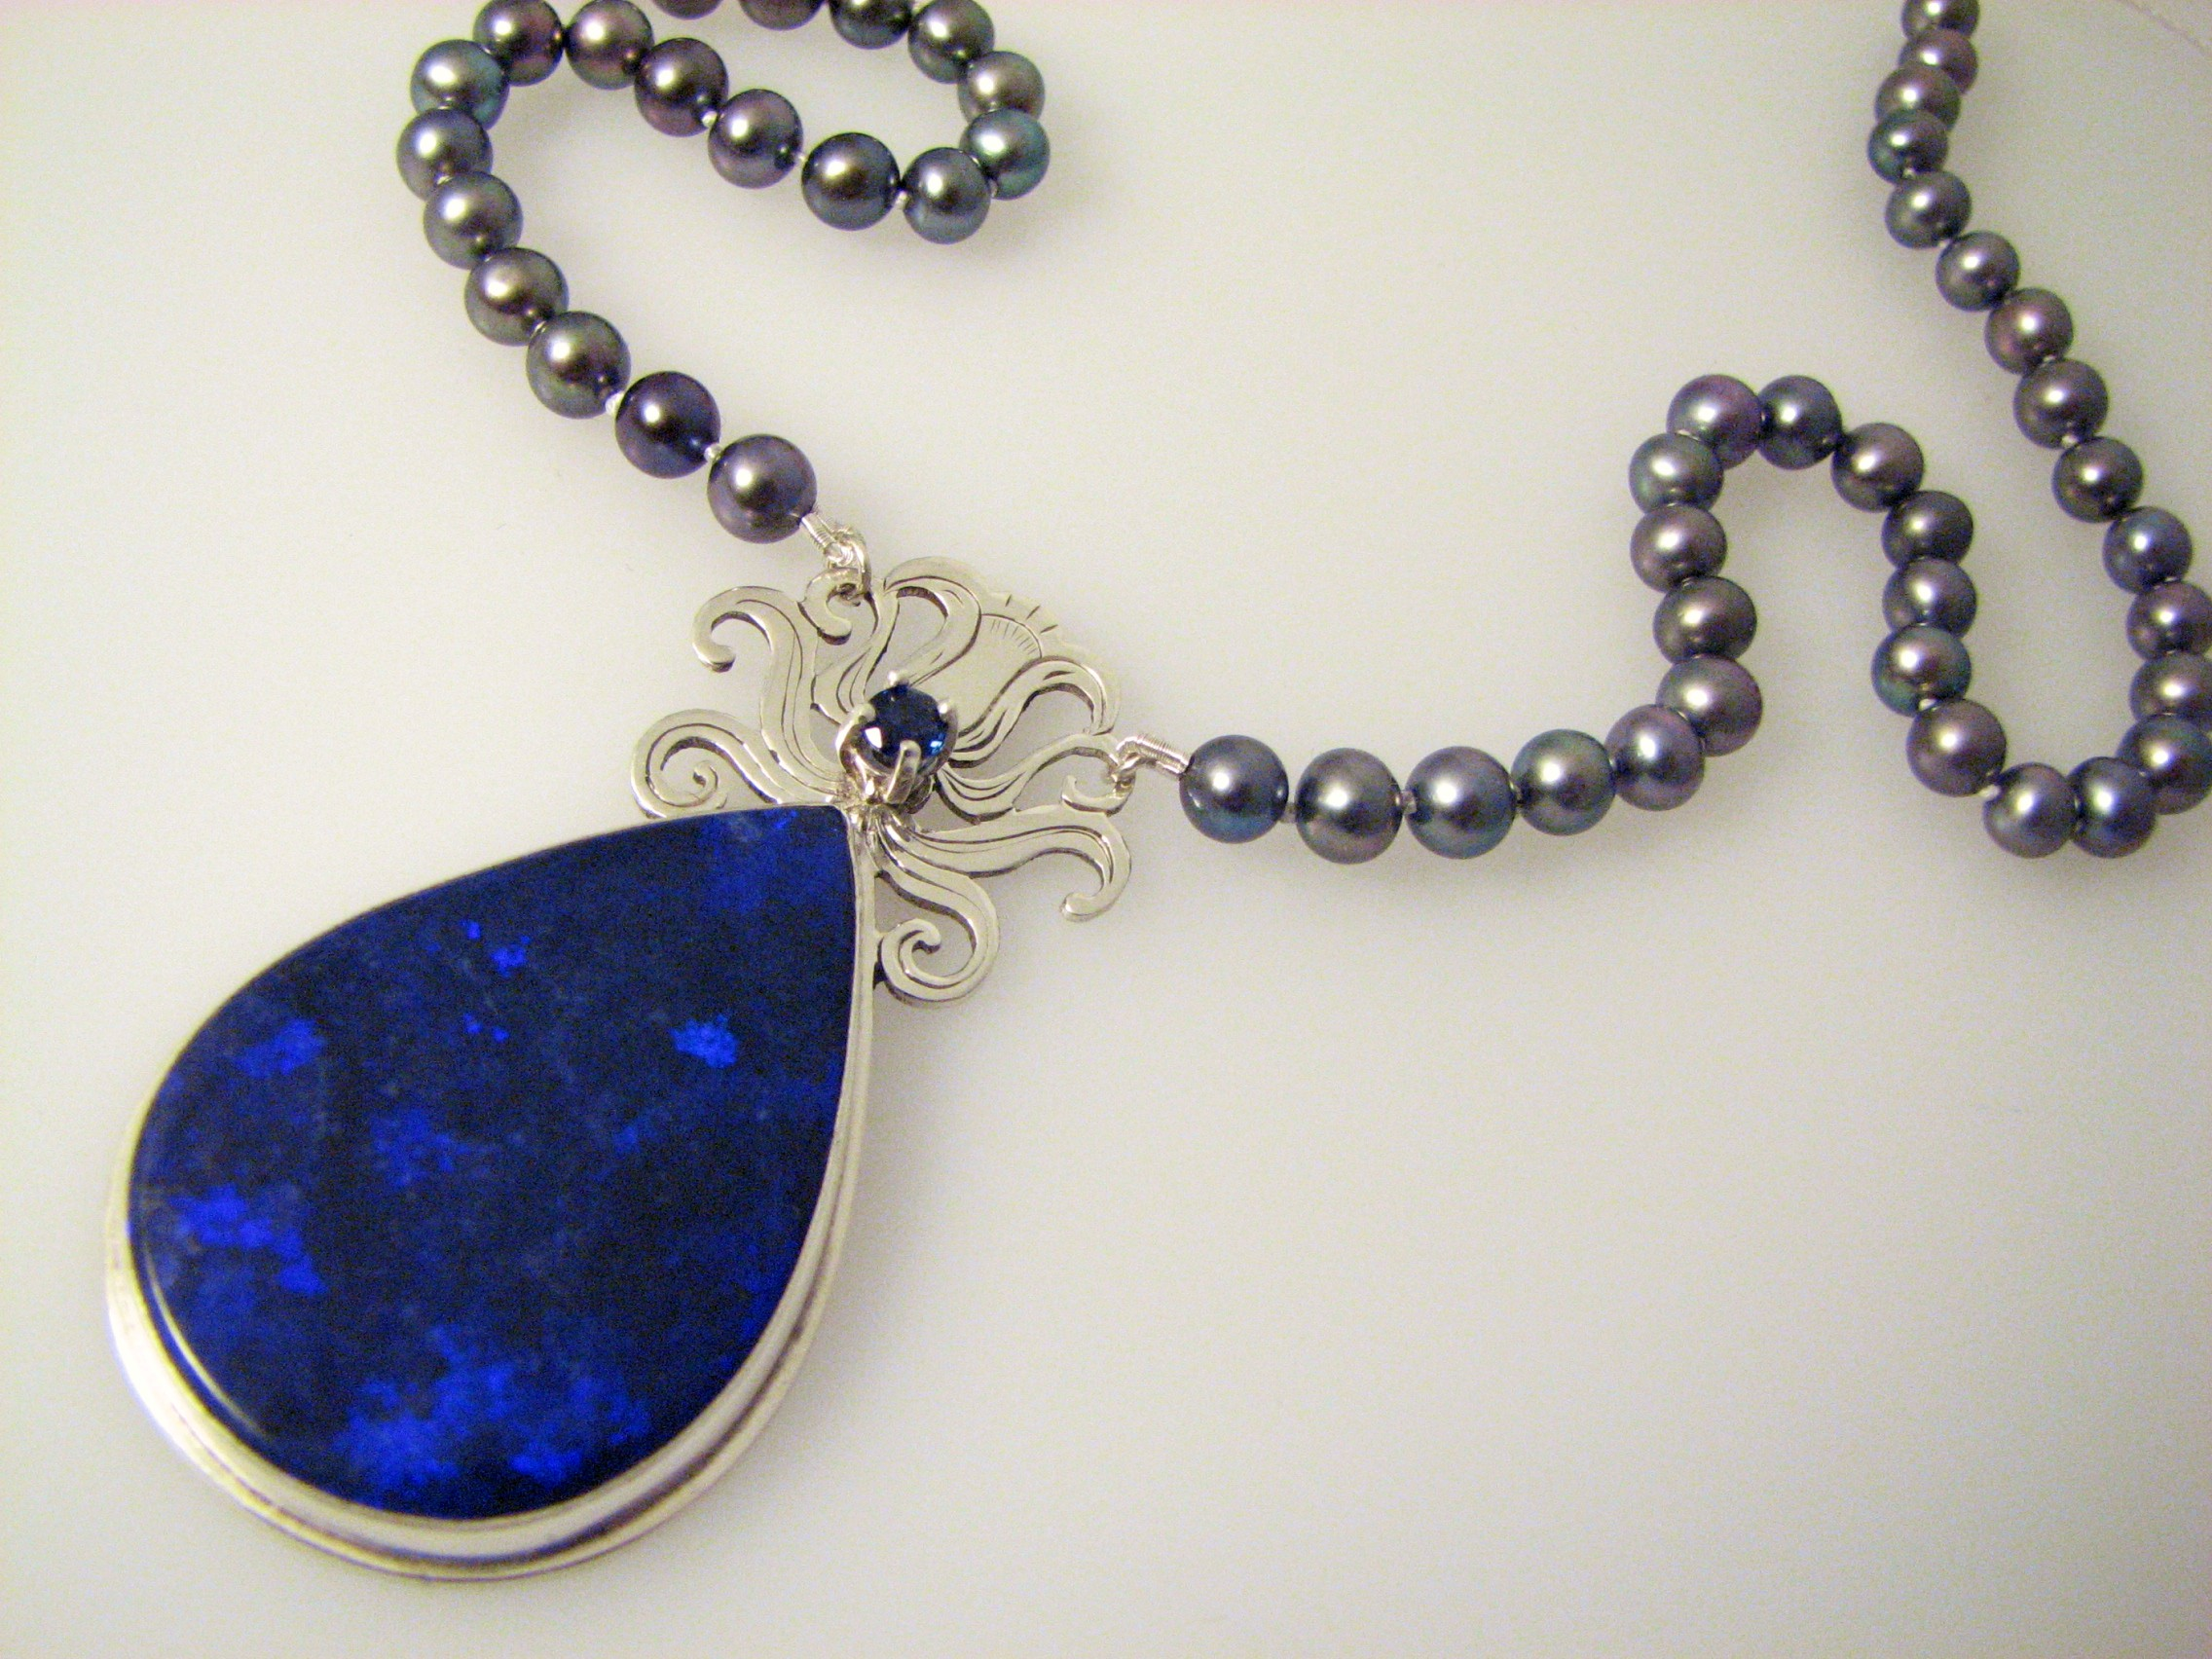 The Pendant Is Inspired By Moonflower A Gorgeous Night Blooming Flower Related To Morning Glory